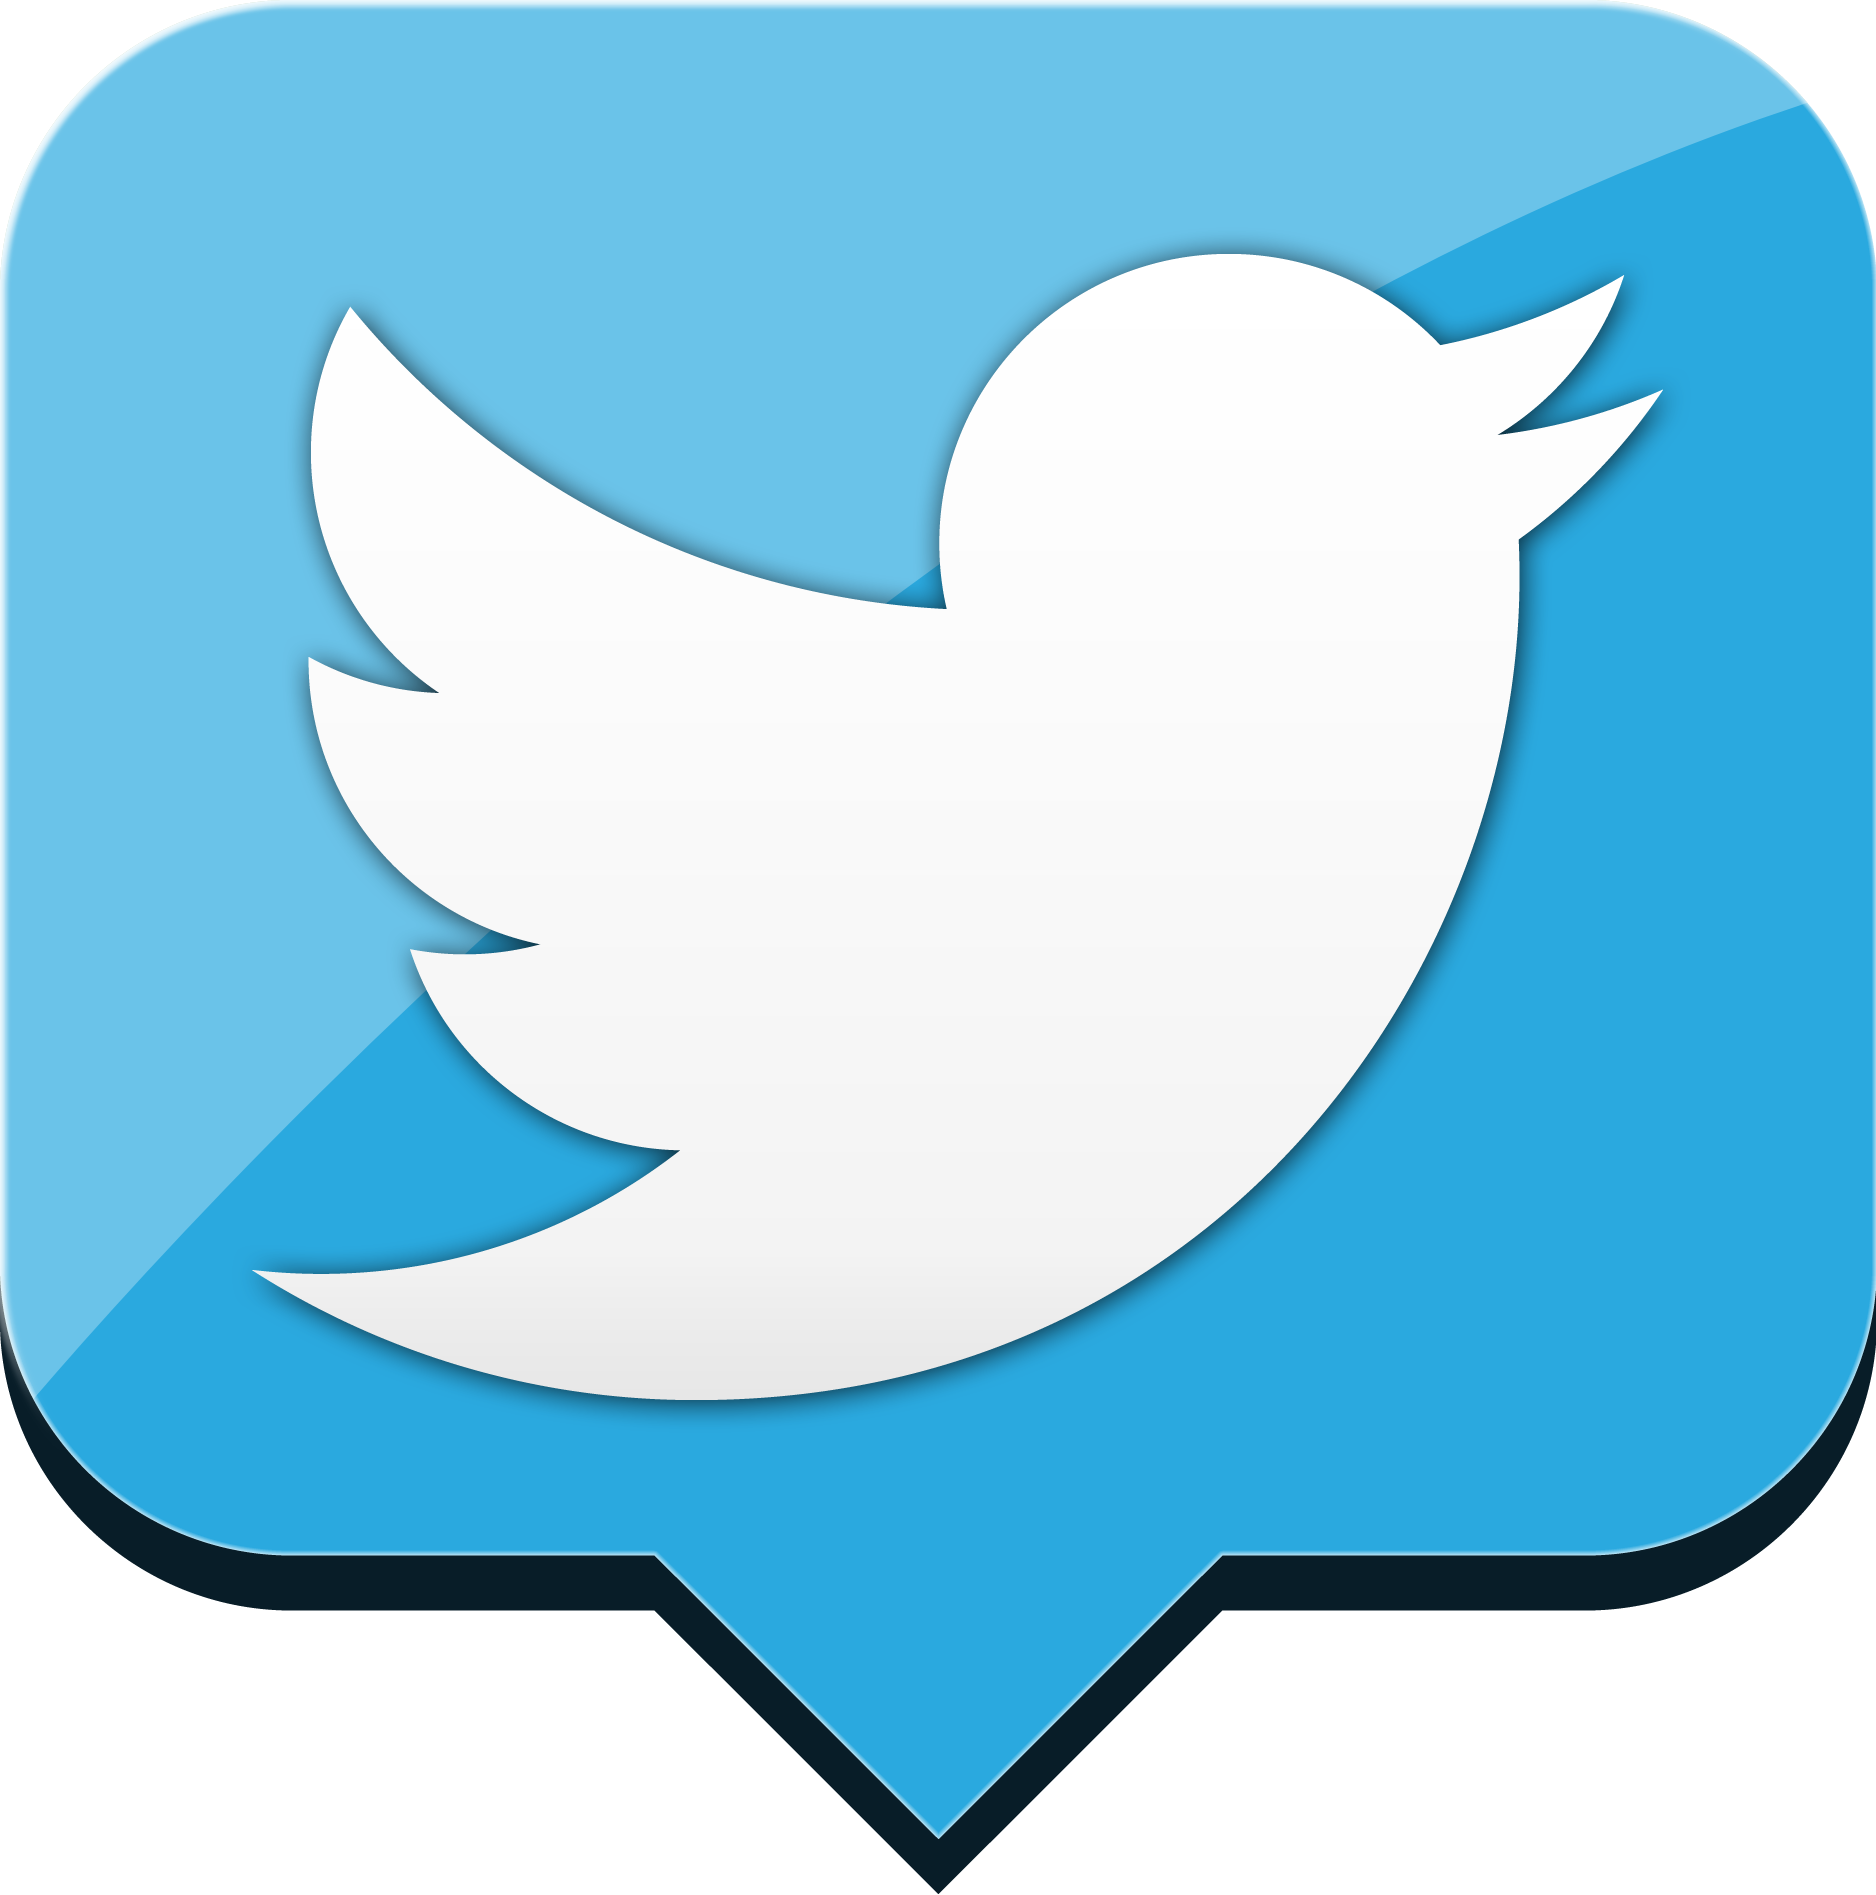 industrial manufacturing twitter. Factories clipart industry profile